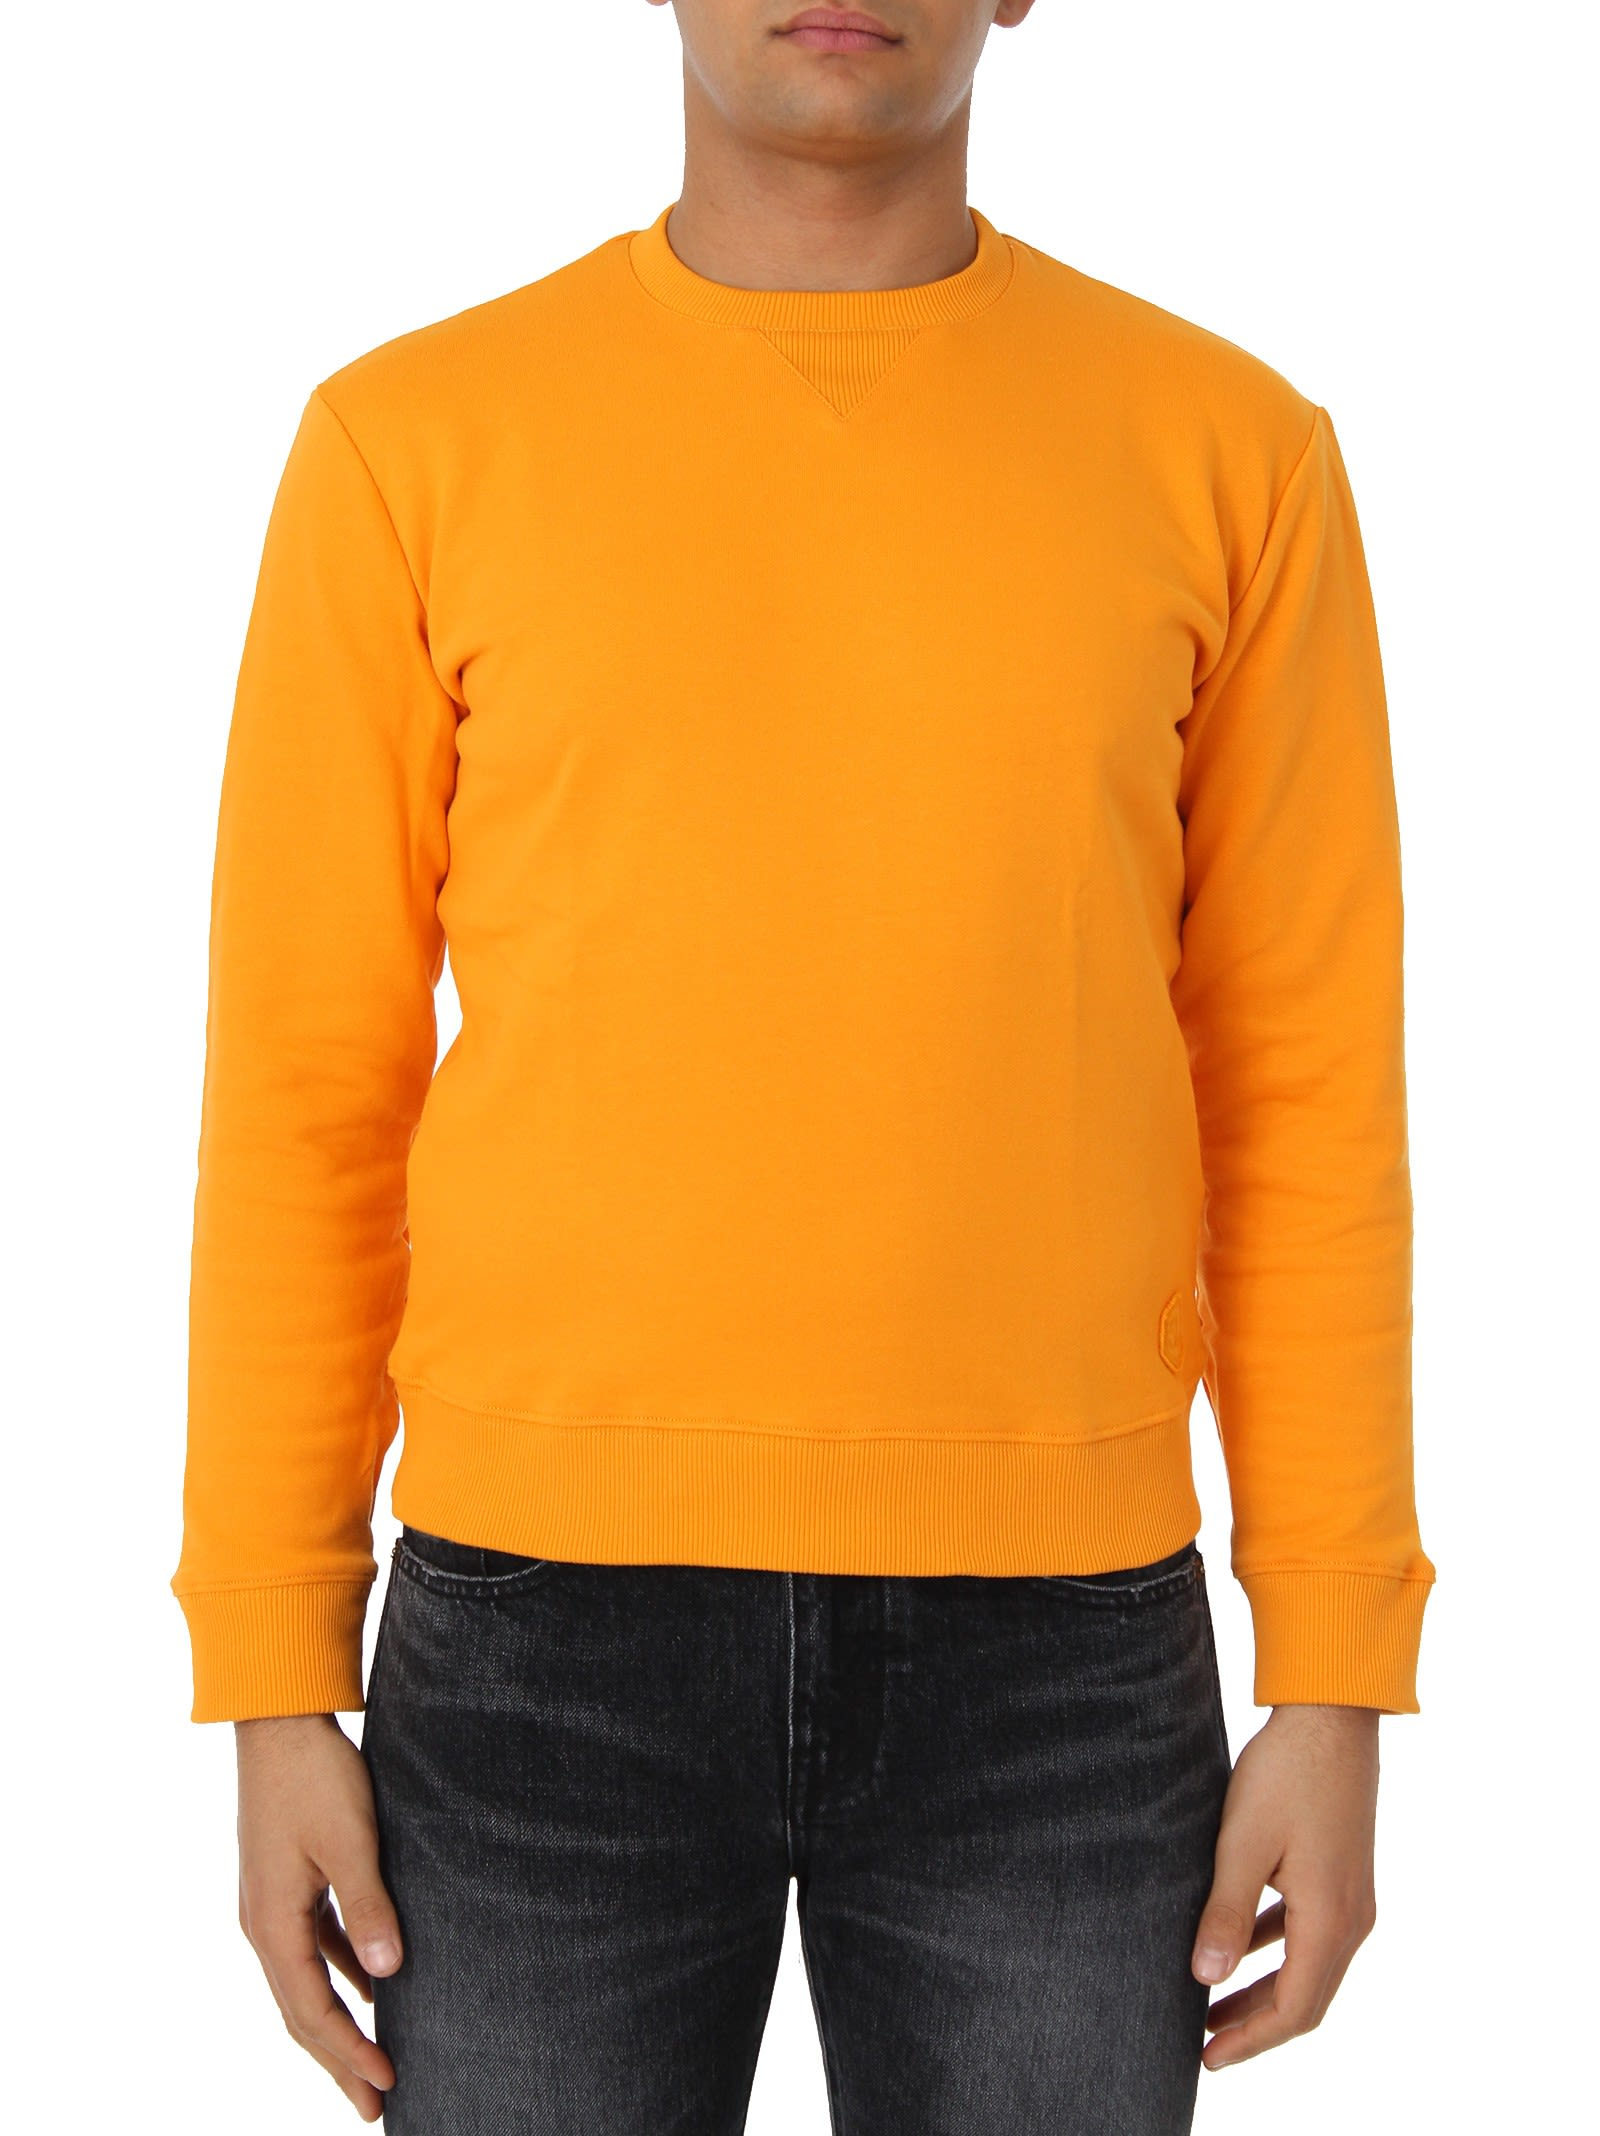 Saint Laurent Orange Logo Patch Sweat Shirt